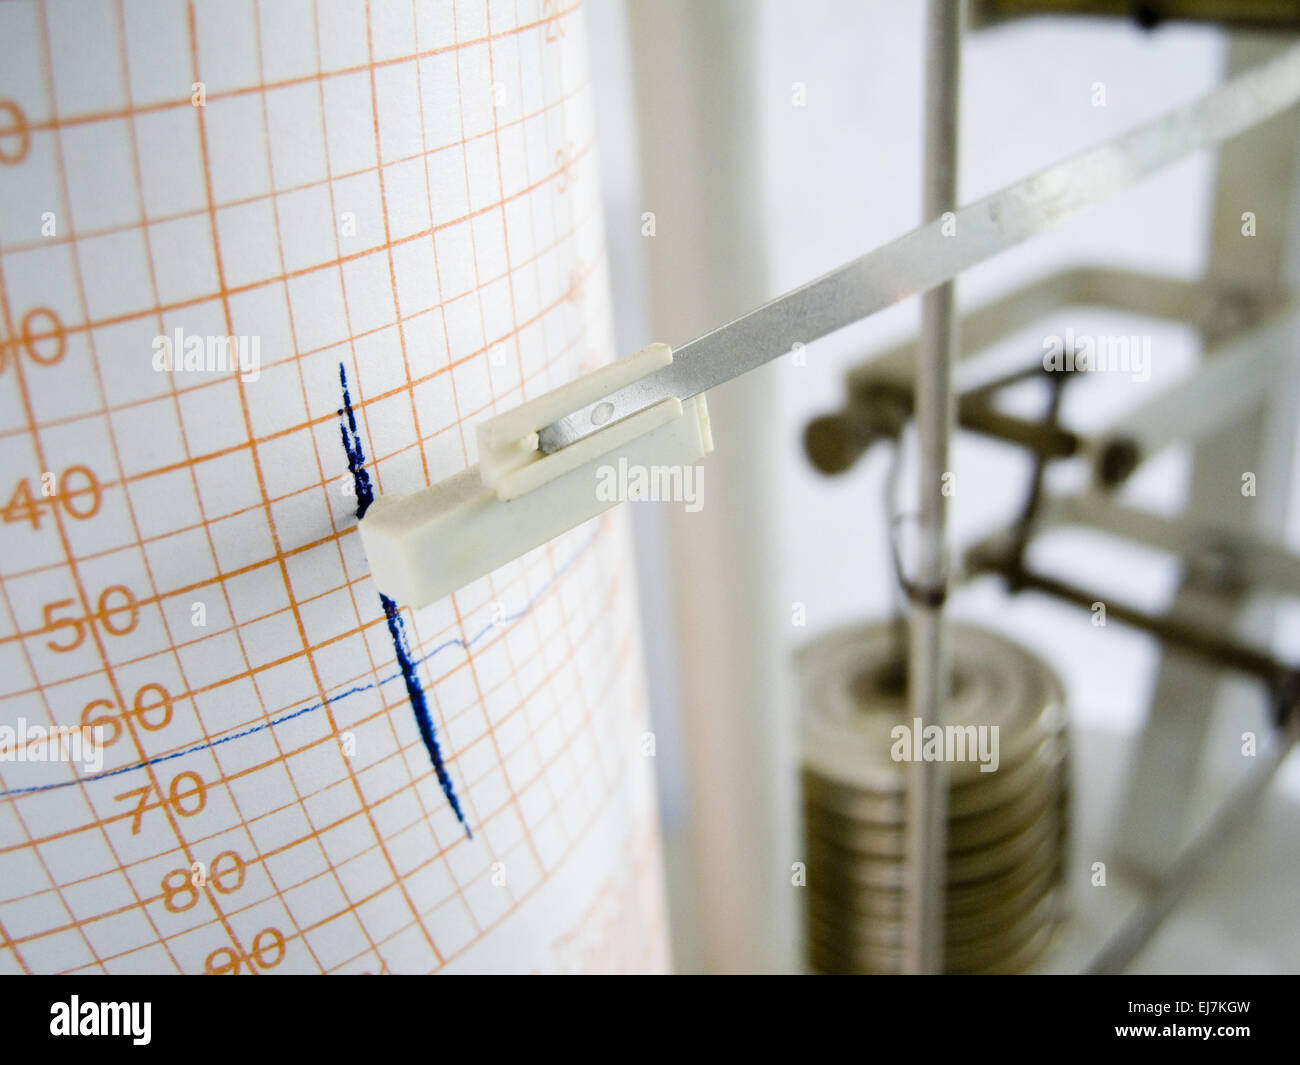 humidity measurement - Stock Image